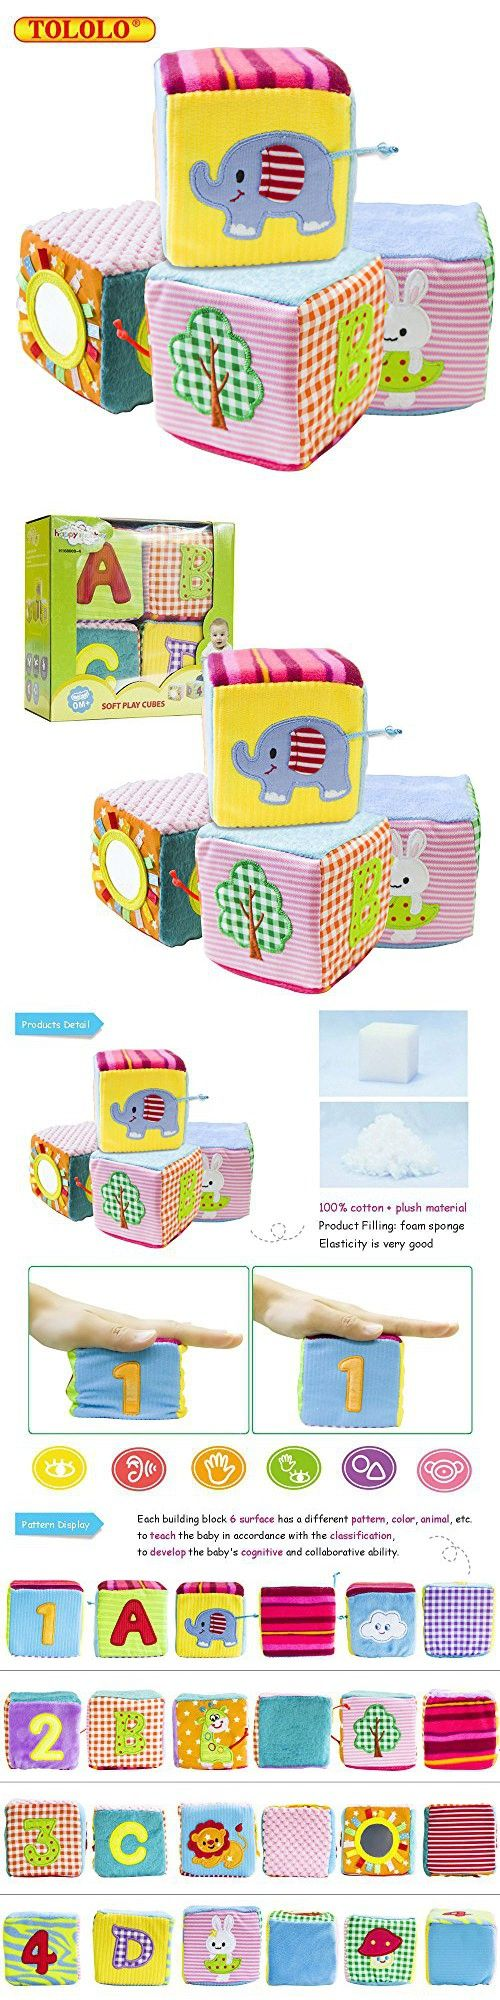 TOLOLO 4PC Infant Baby Cloth Soft Animal Rattle Toy; Foam Grab and Stack Building Blocks with Safety Mirror Cubes Toy Set ( Exquisite Packing)